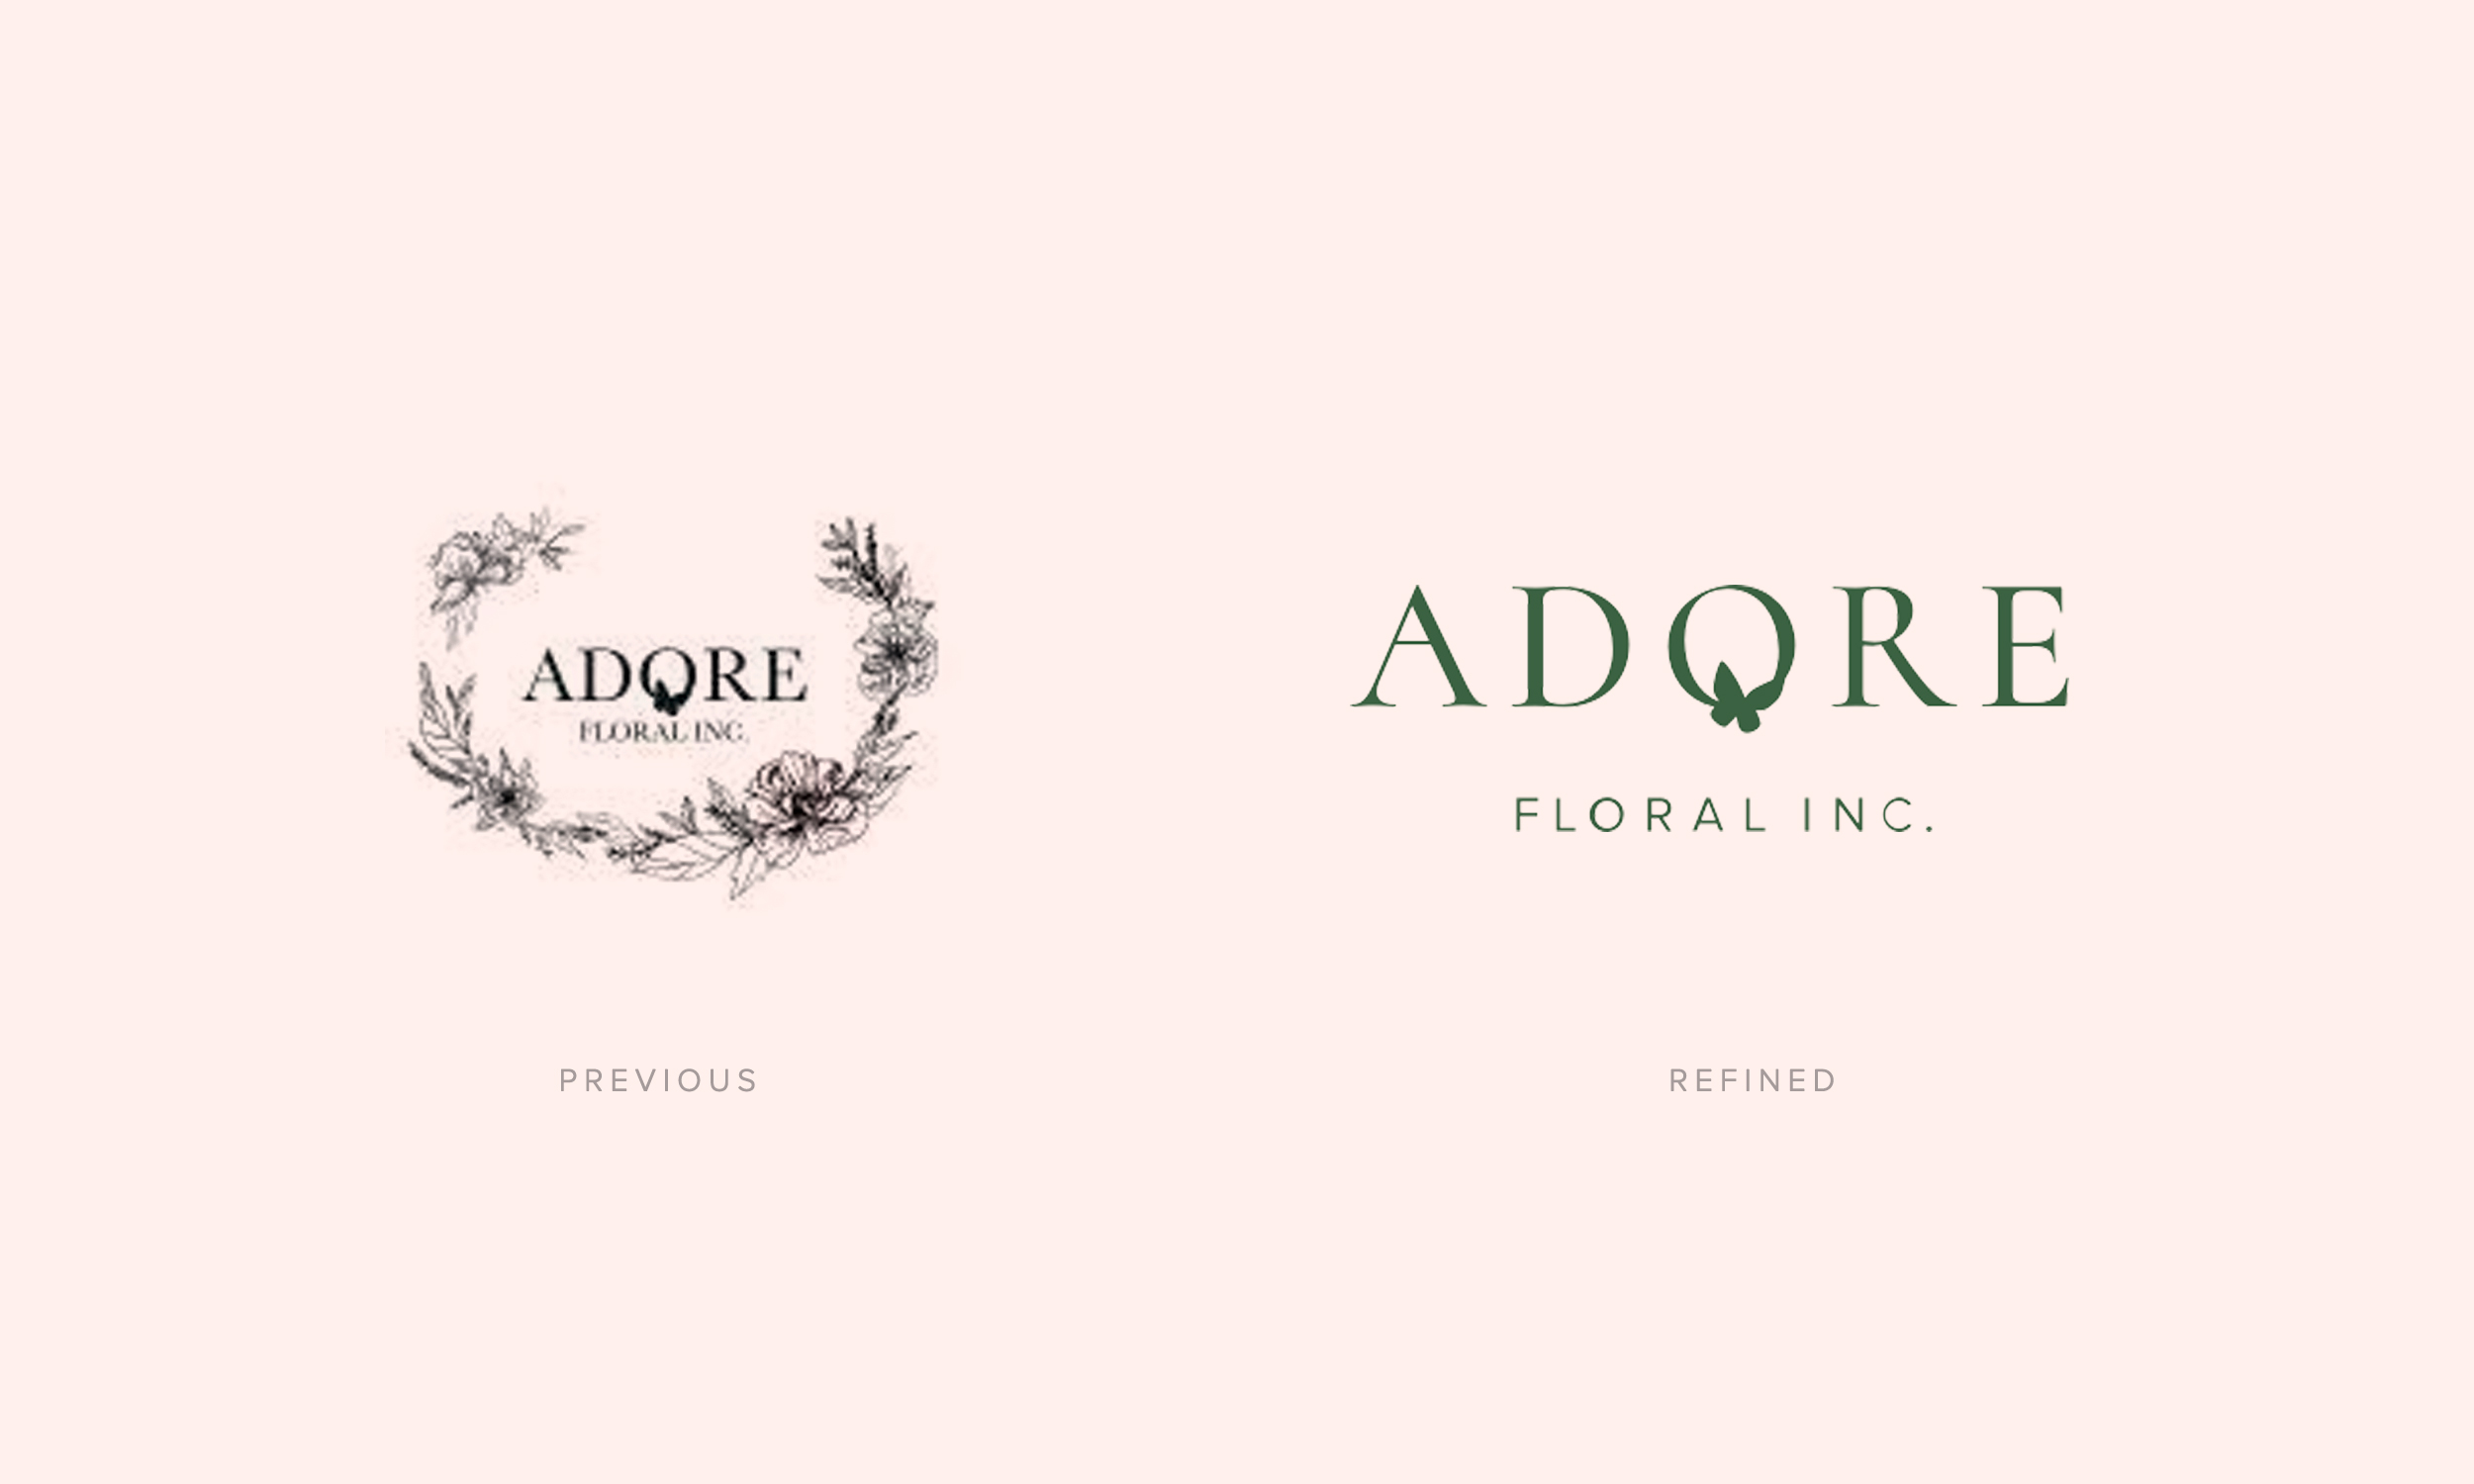 Adore Floral brand identity by Shoppe Theory.